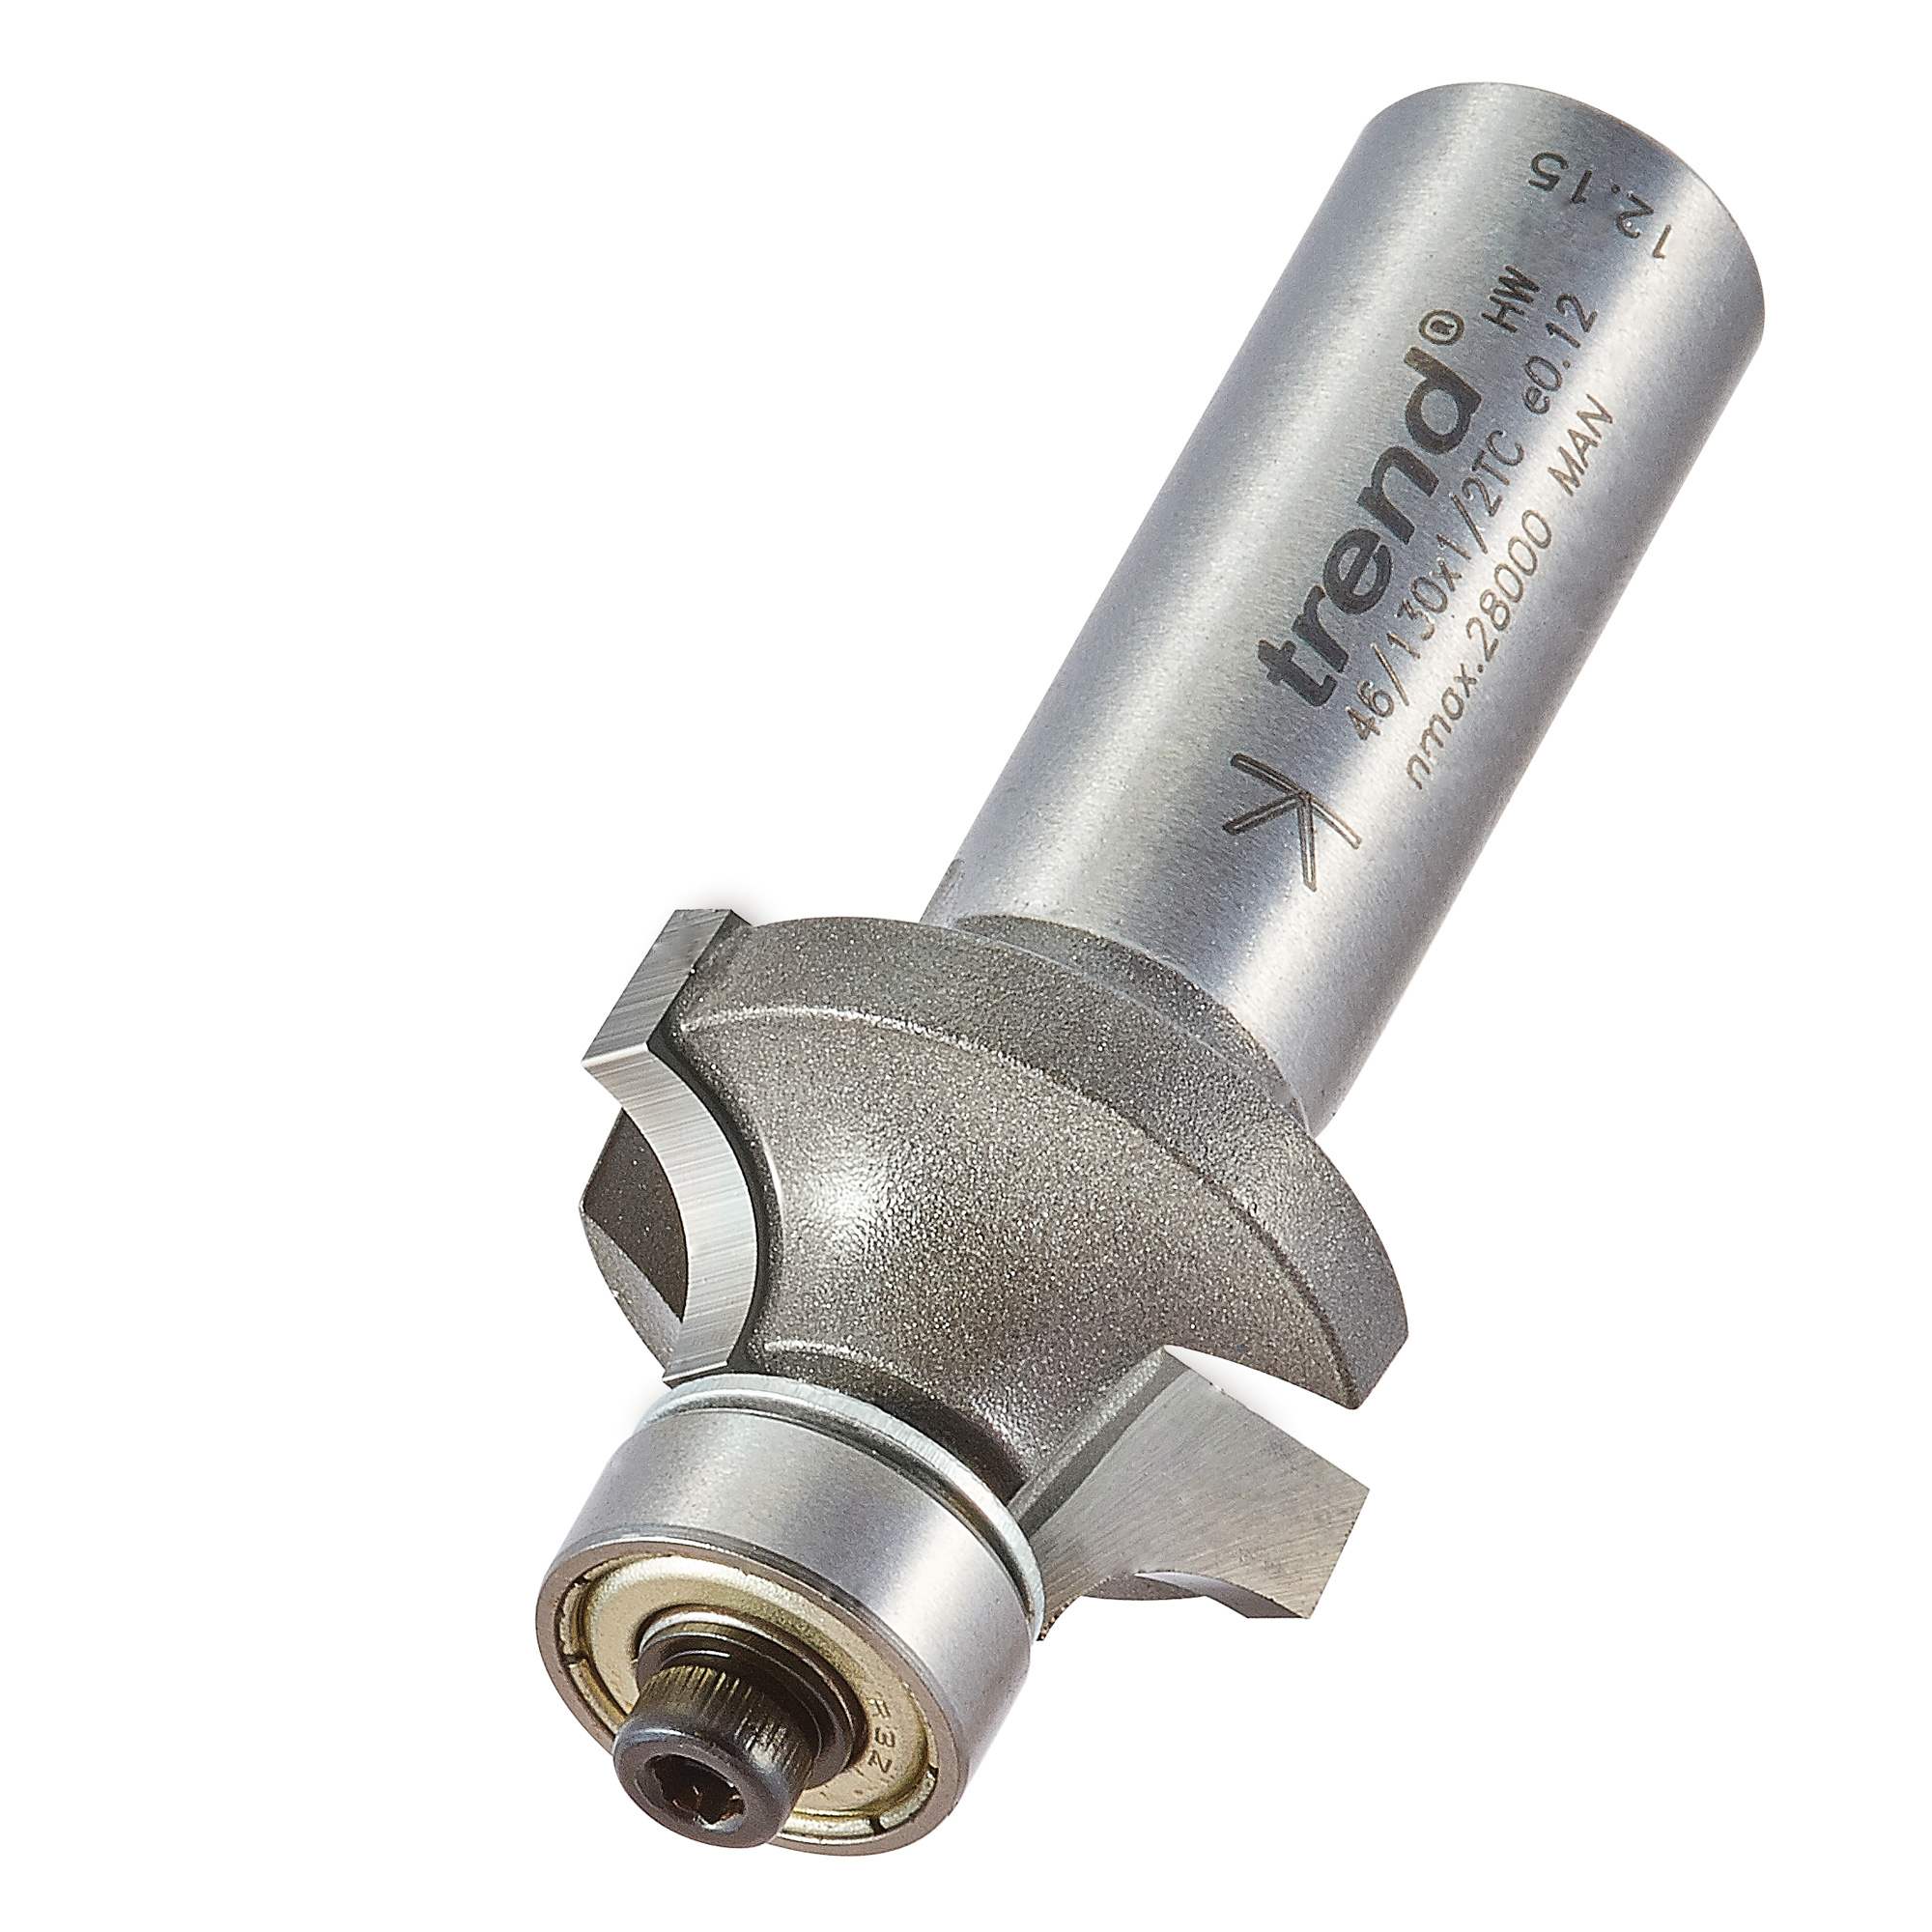 TREND 46/130X1/2TC BEARING GUIDED OVOLO CUTTER 6.3MM RADIUS